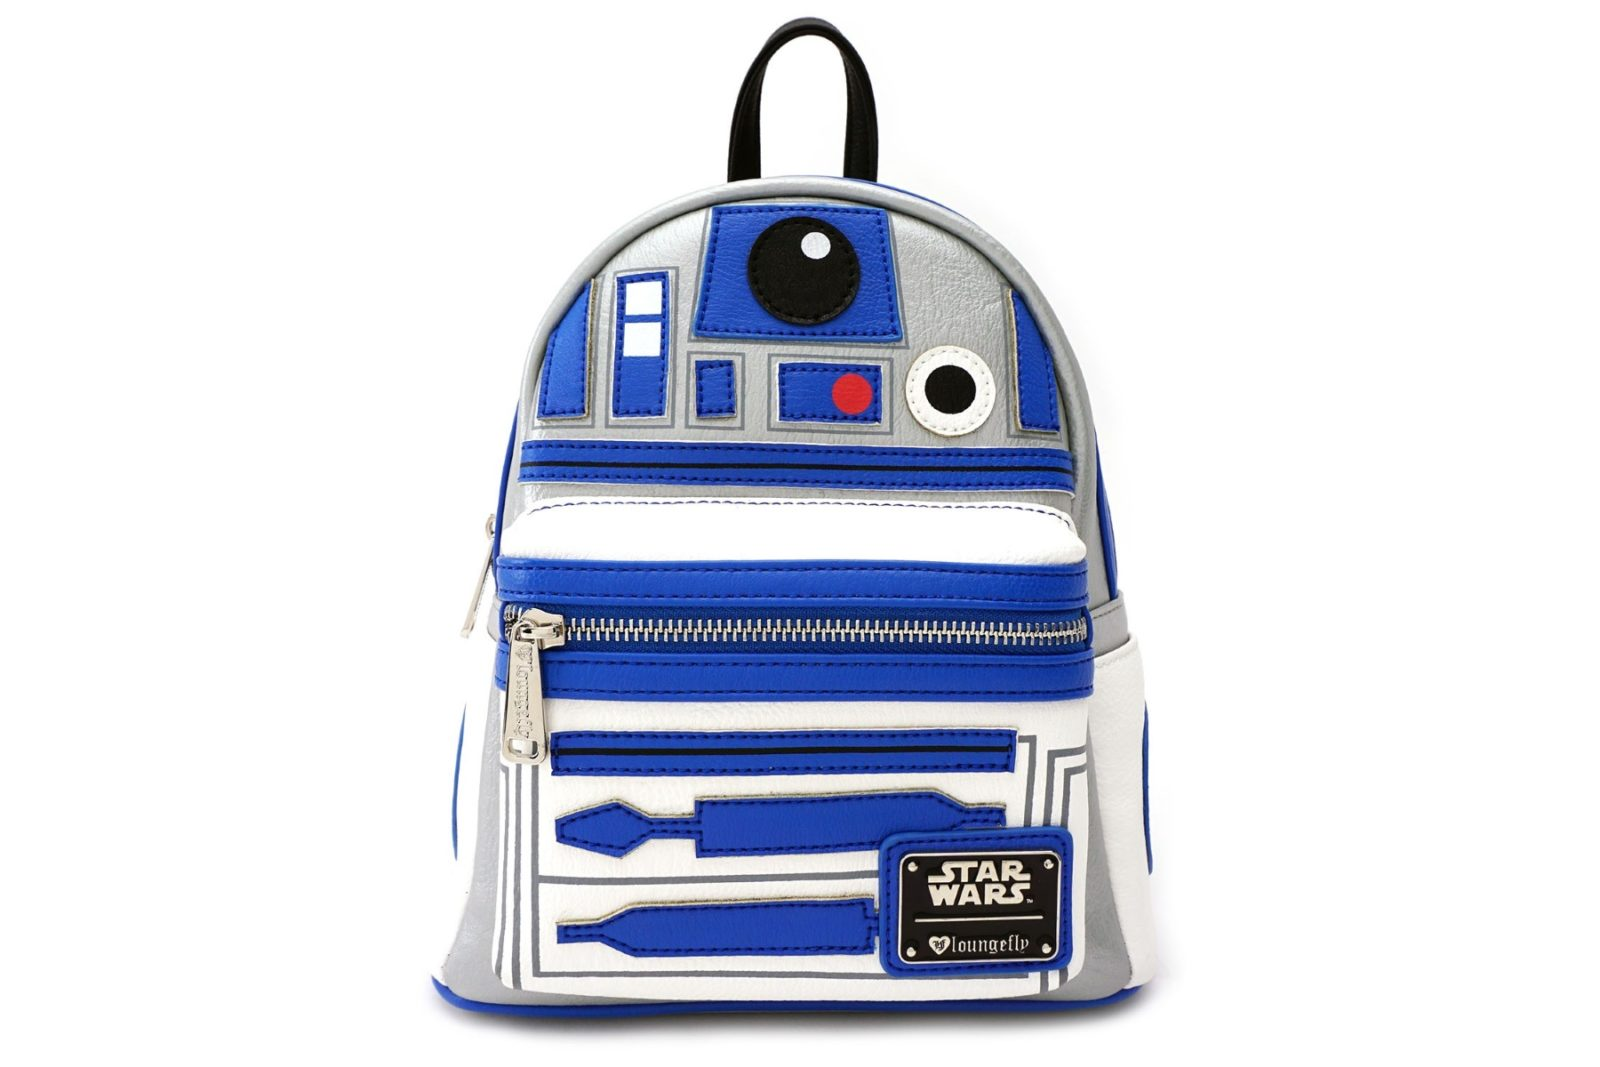 Loungefly R2-D2 Mini Backpack Out Now